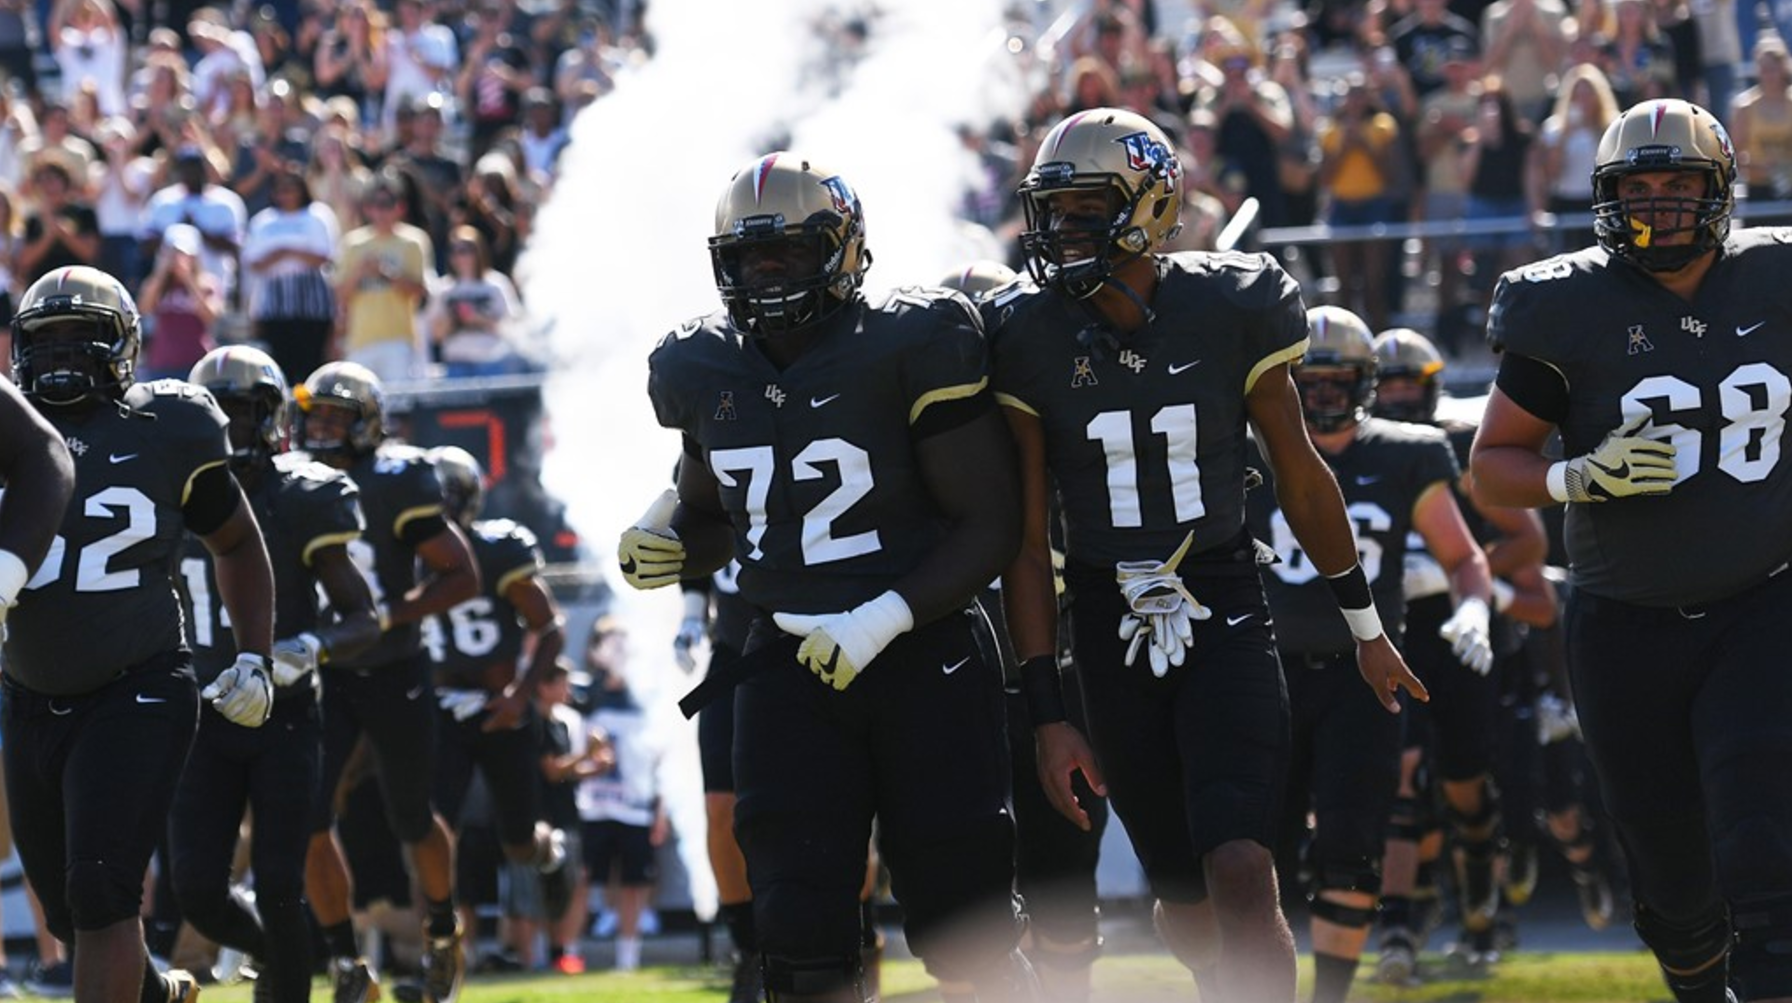 Central Florida, Maryland's next football opponent, calls off second straight game